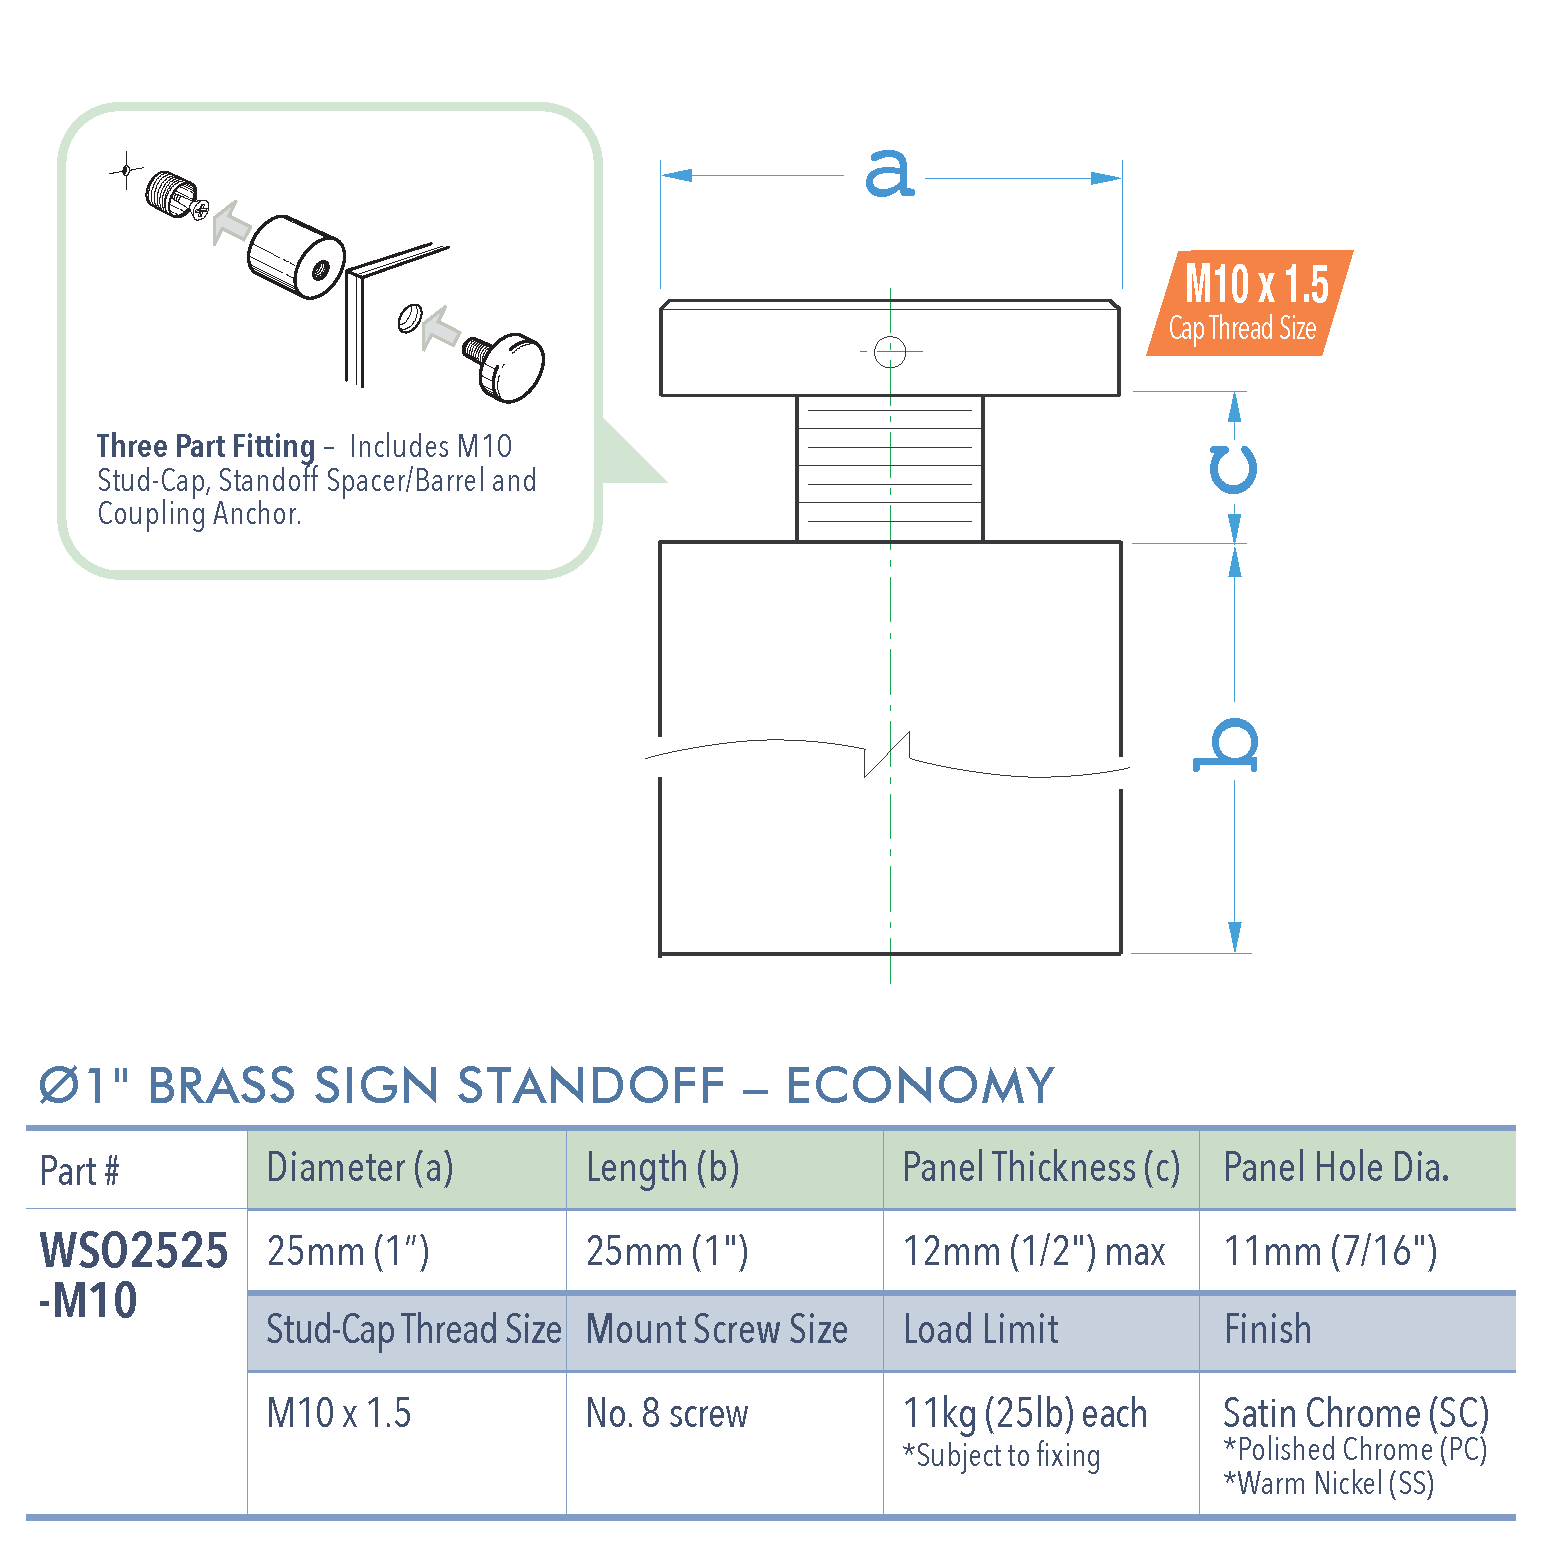 Specifications for WSO2525 M10